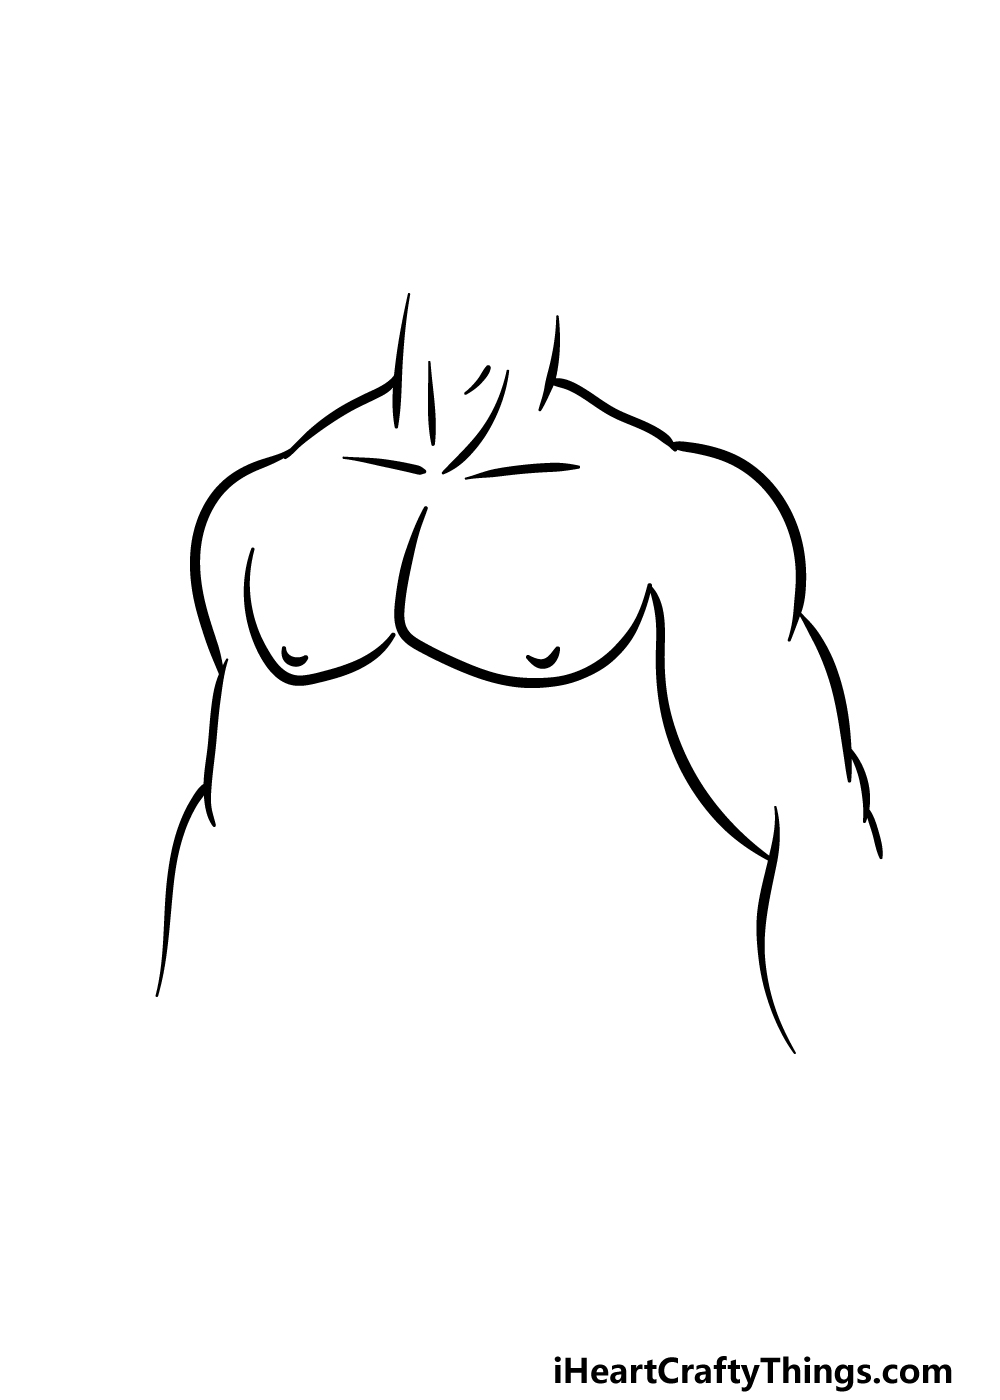 drawing abs step 3